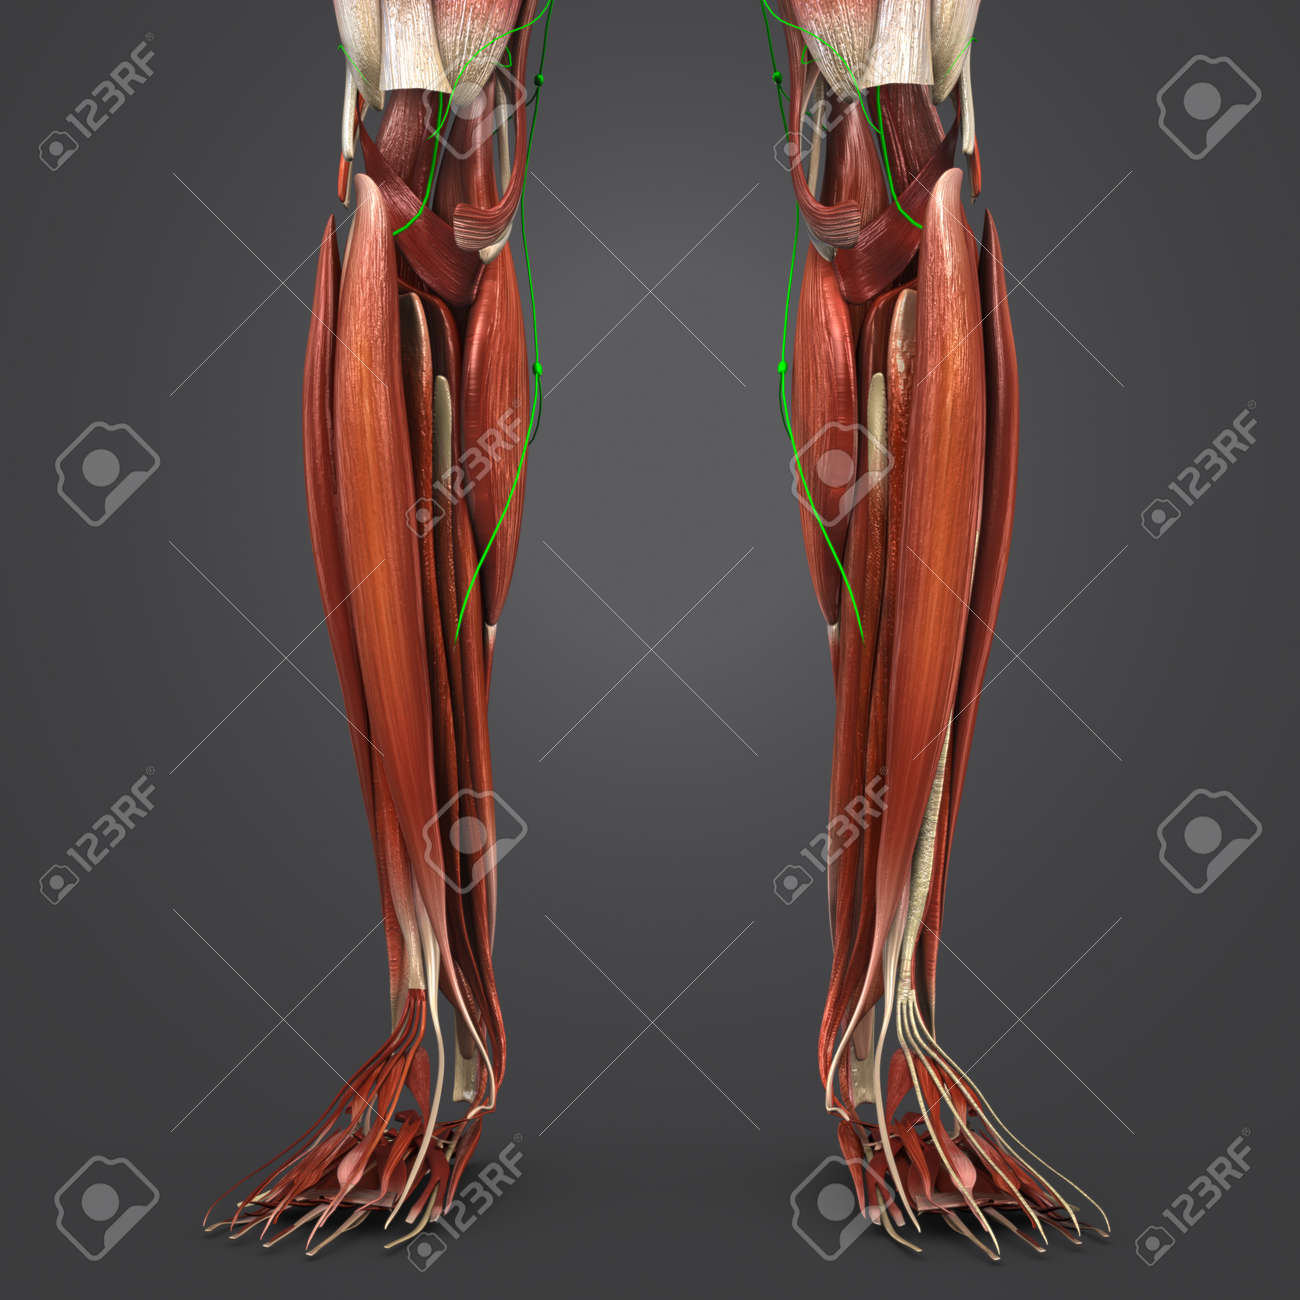 Leg Muscles With Lymph Nodes Stock Photo Picture And Royalty Free